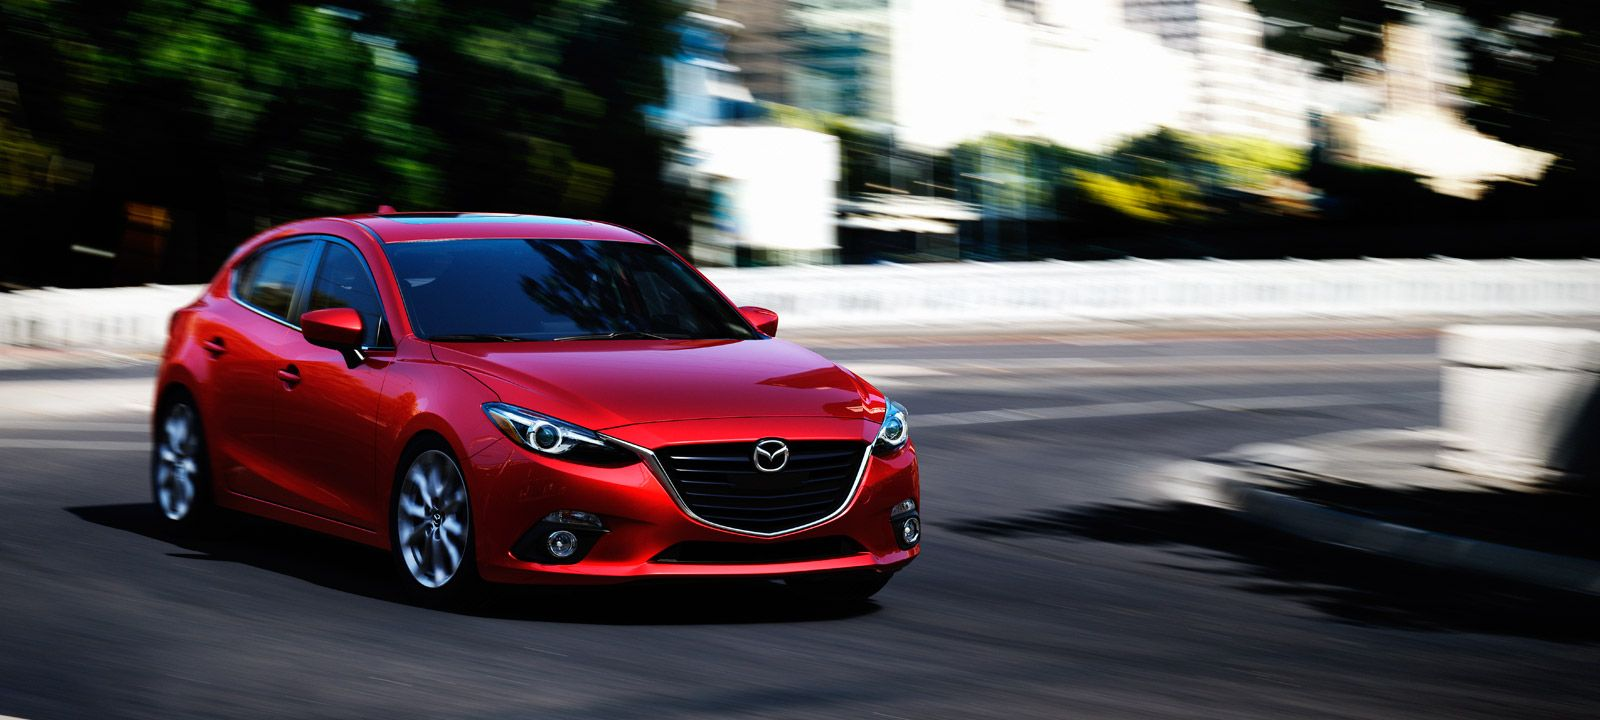 2015 Mazda 3 Hatchback Fuel Efficient Compact Car